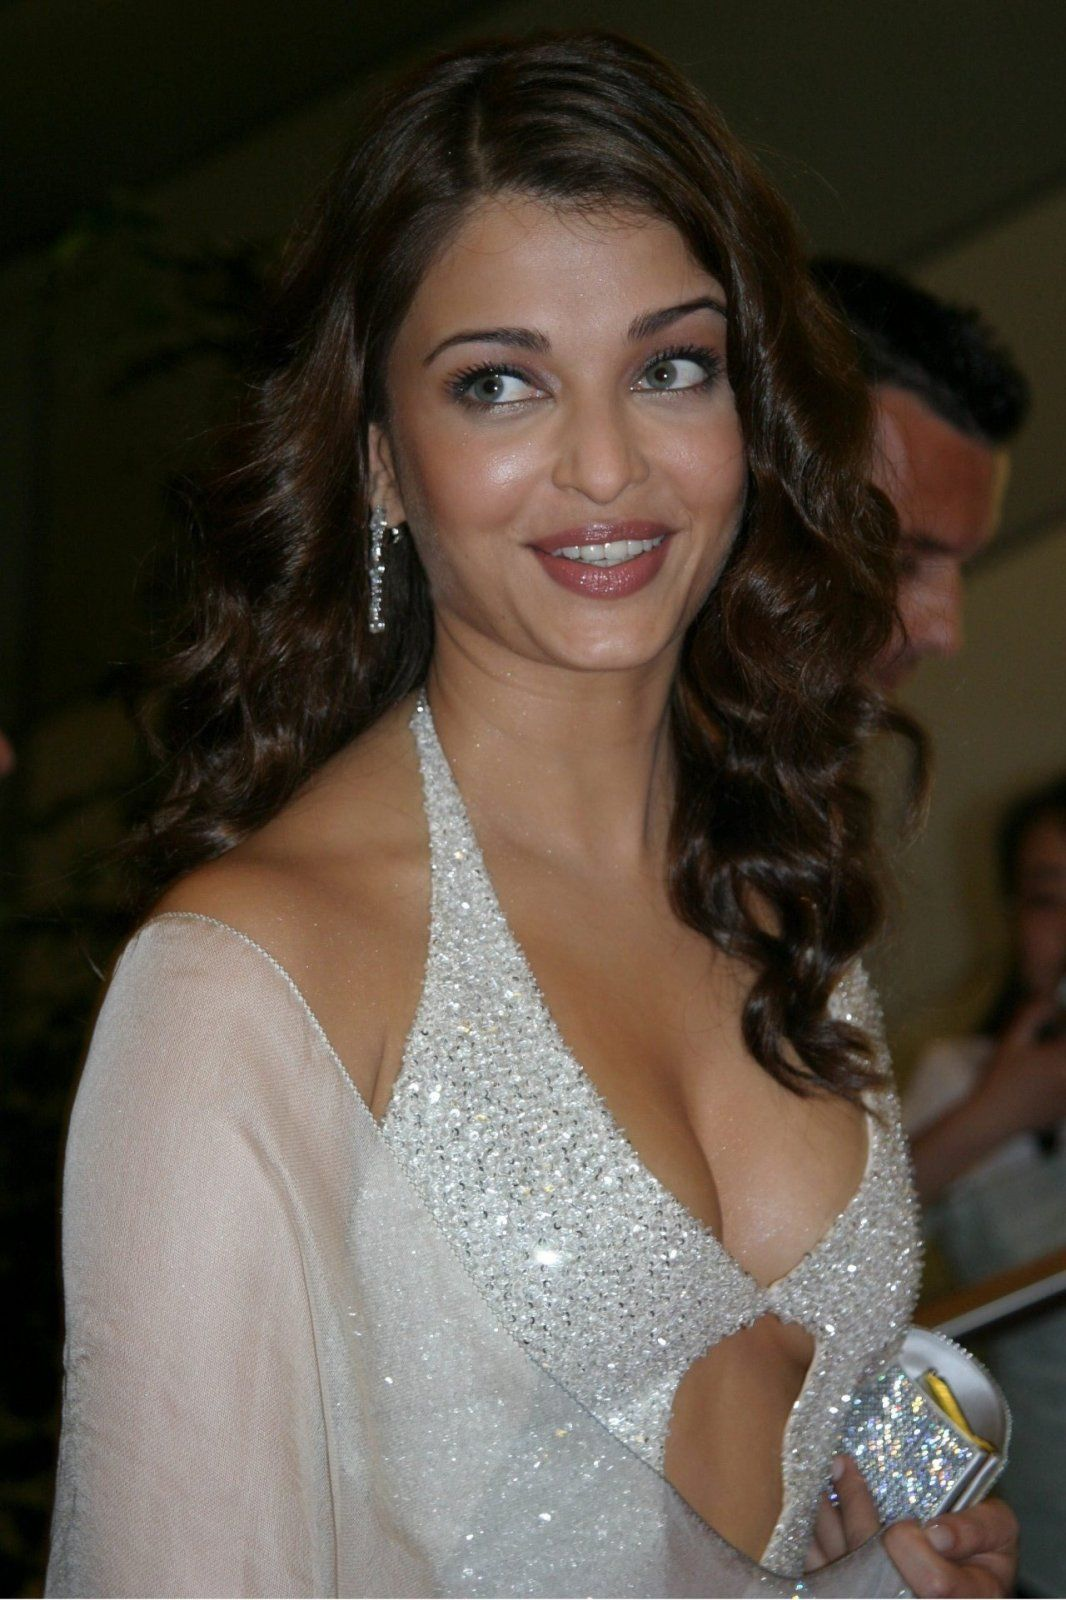 http://4.bp.blogspot.com/-ehaU3ayXb5Y/UOhbC7USCVI/AAAAAAAAA6E/LDh1GvOfF3E/s1600/Aishwarya+Rai+without+clothes+and+without+makeup,+How+she+looks4+(1).jpg